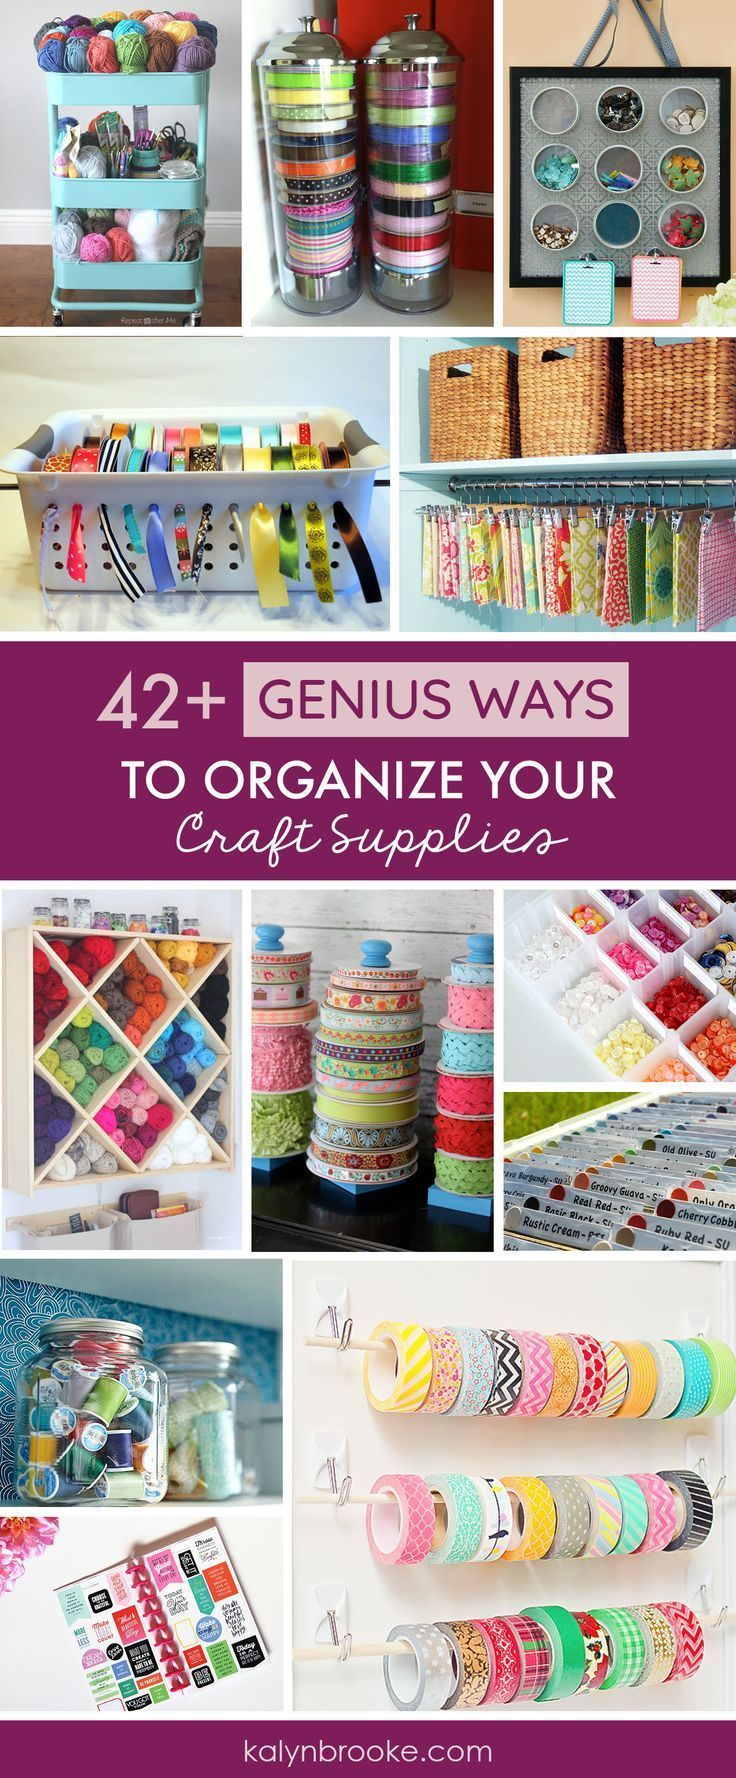 42+ Genius Ways to Organize Every Craft Supply You Own images